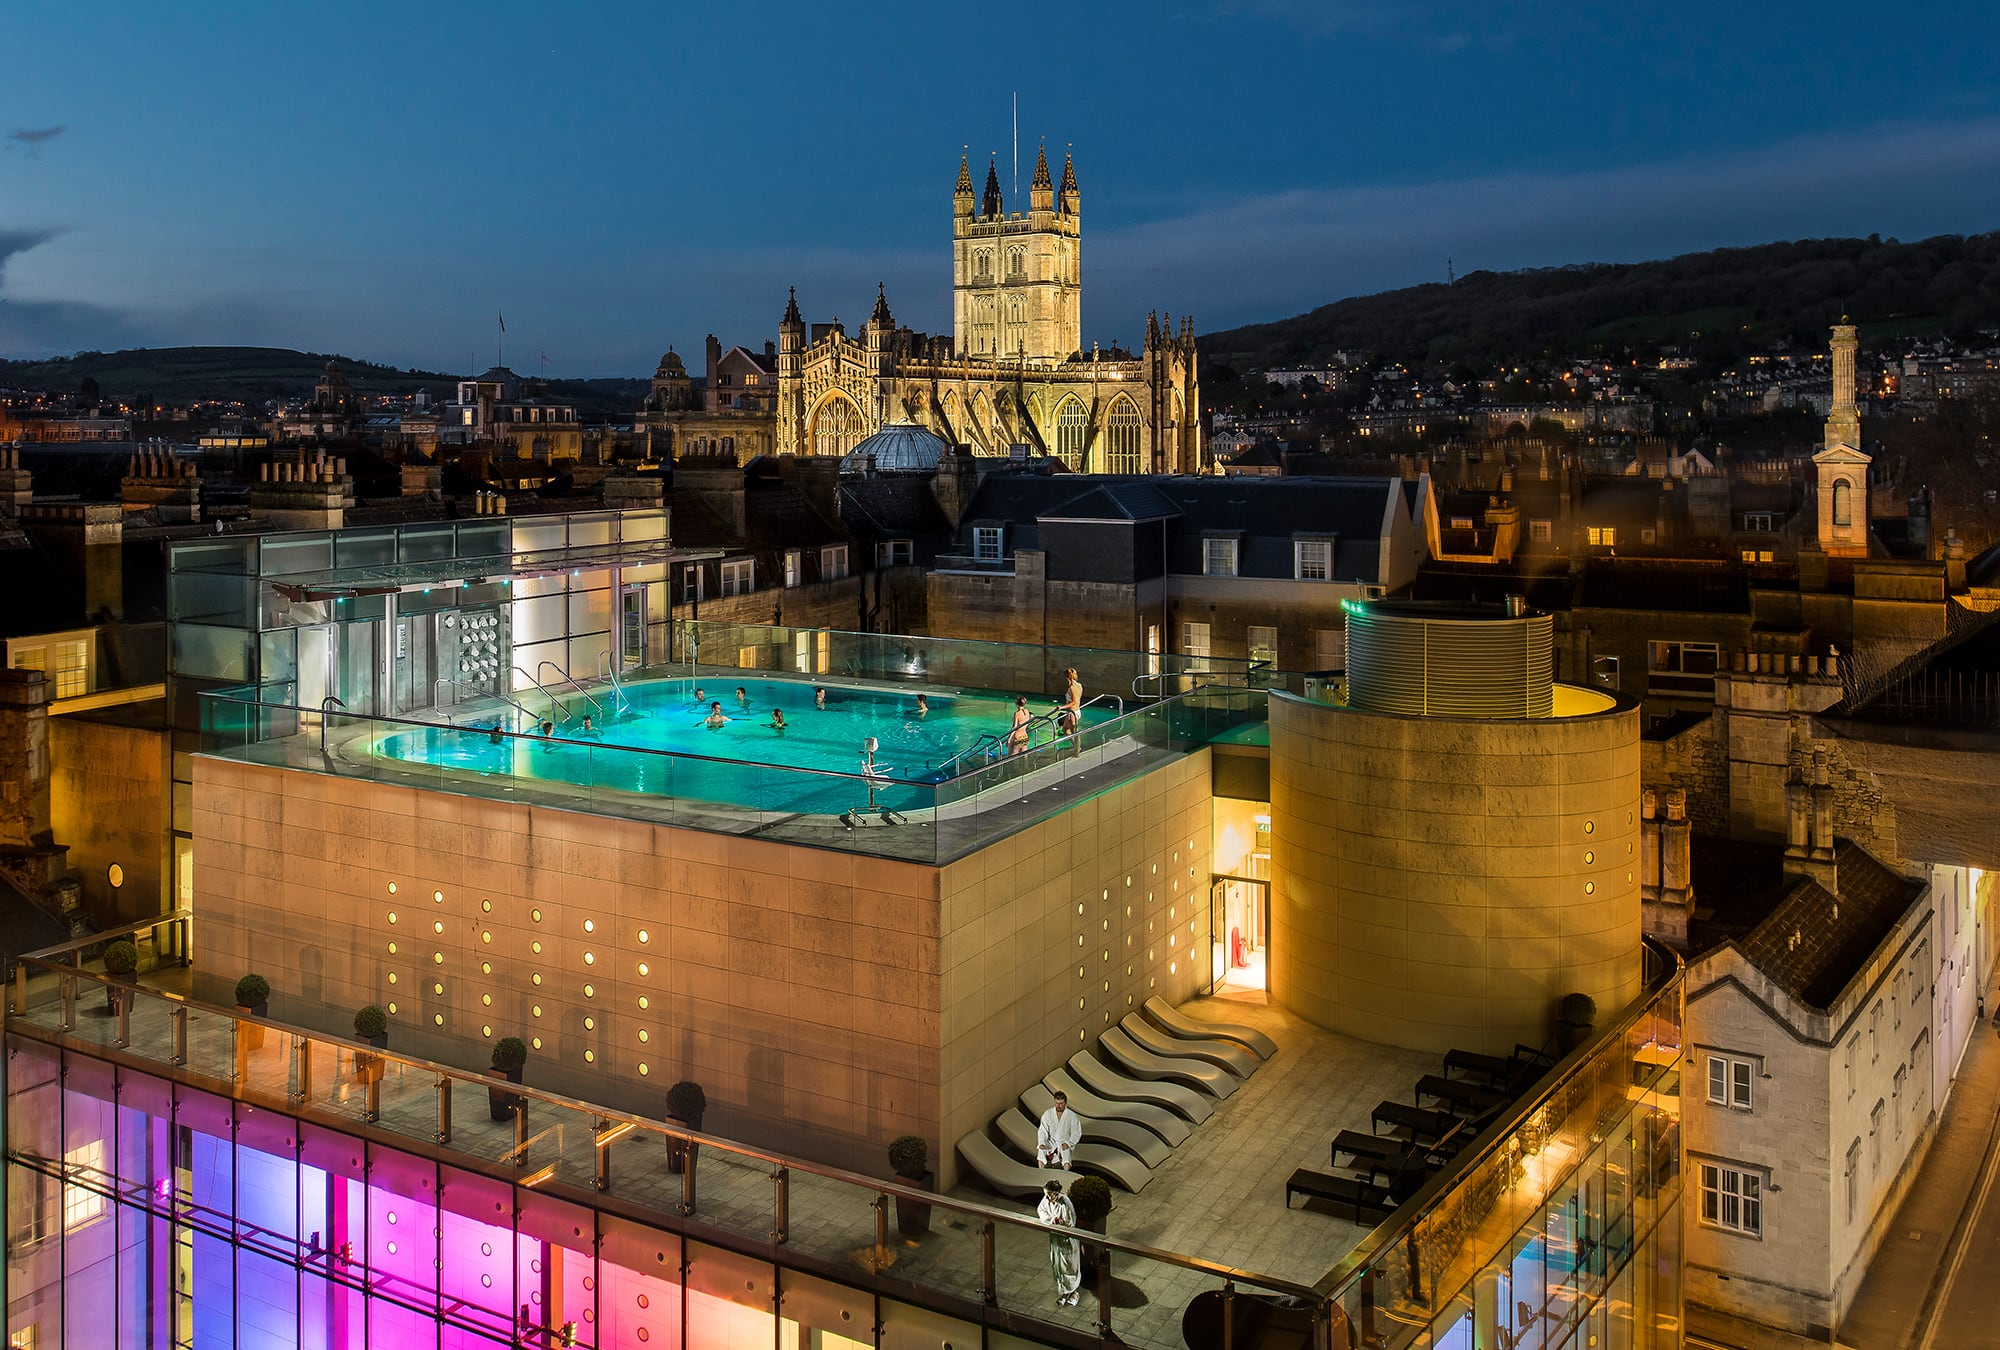 Stay at Dukes Bath and experience the relaxing Thermae Spa